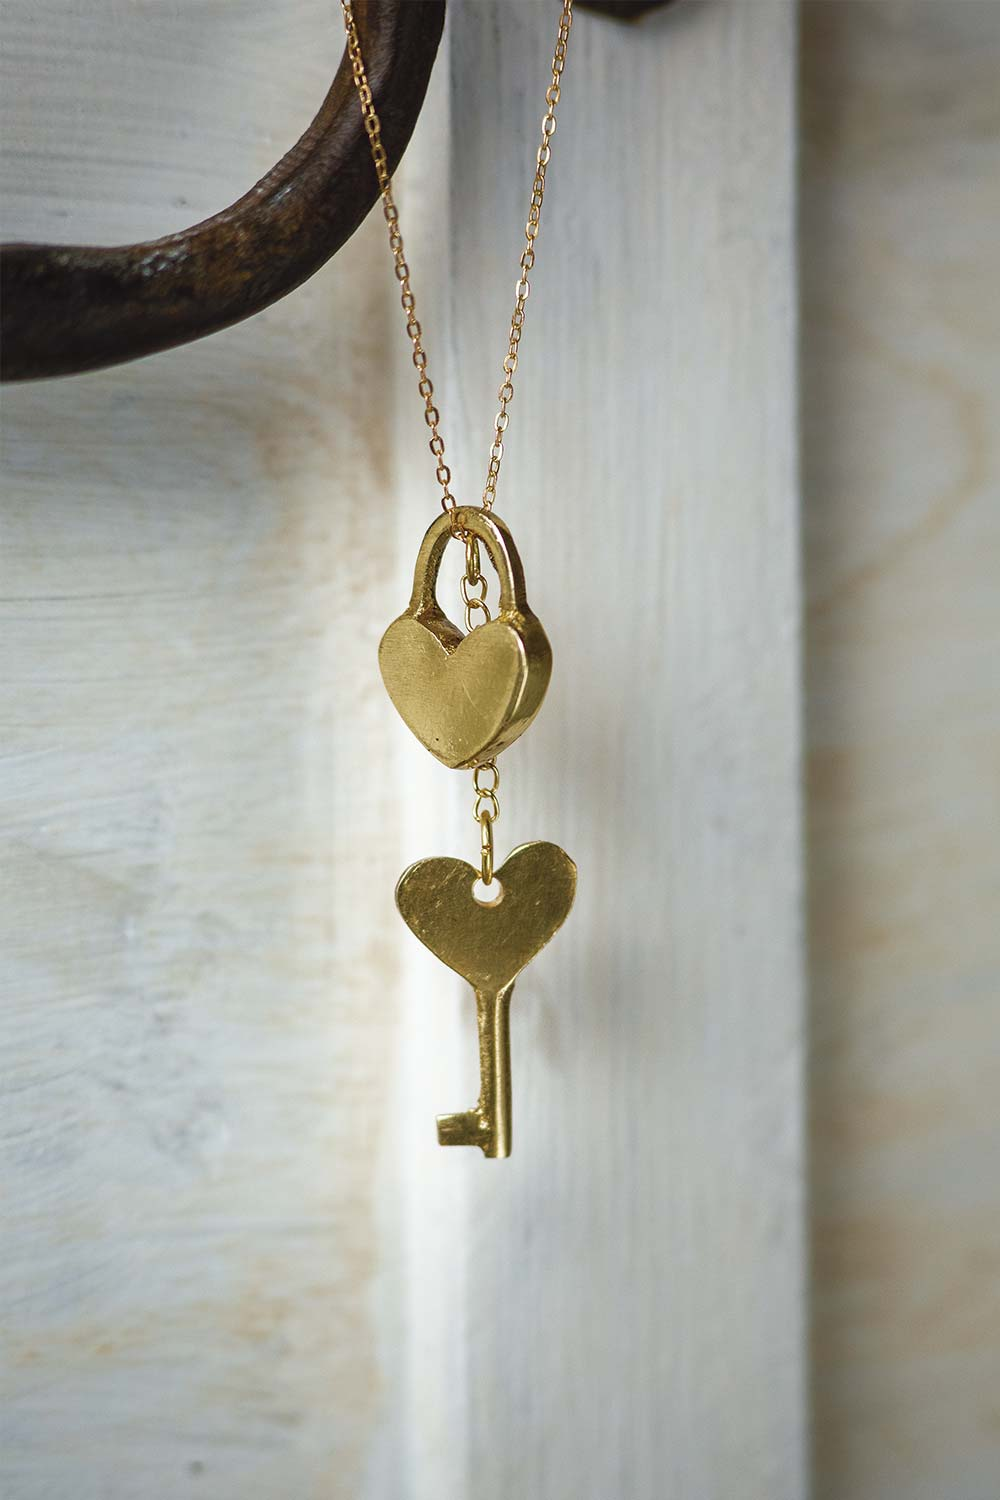 CHAIN NECKLACE PADLOCK / KEY